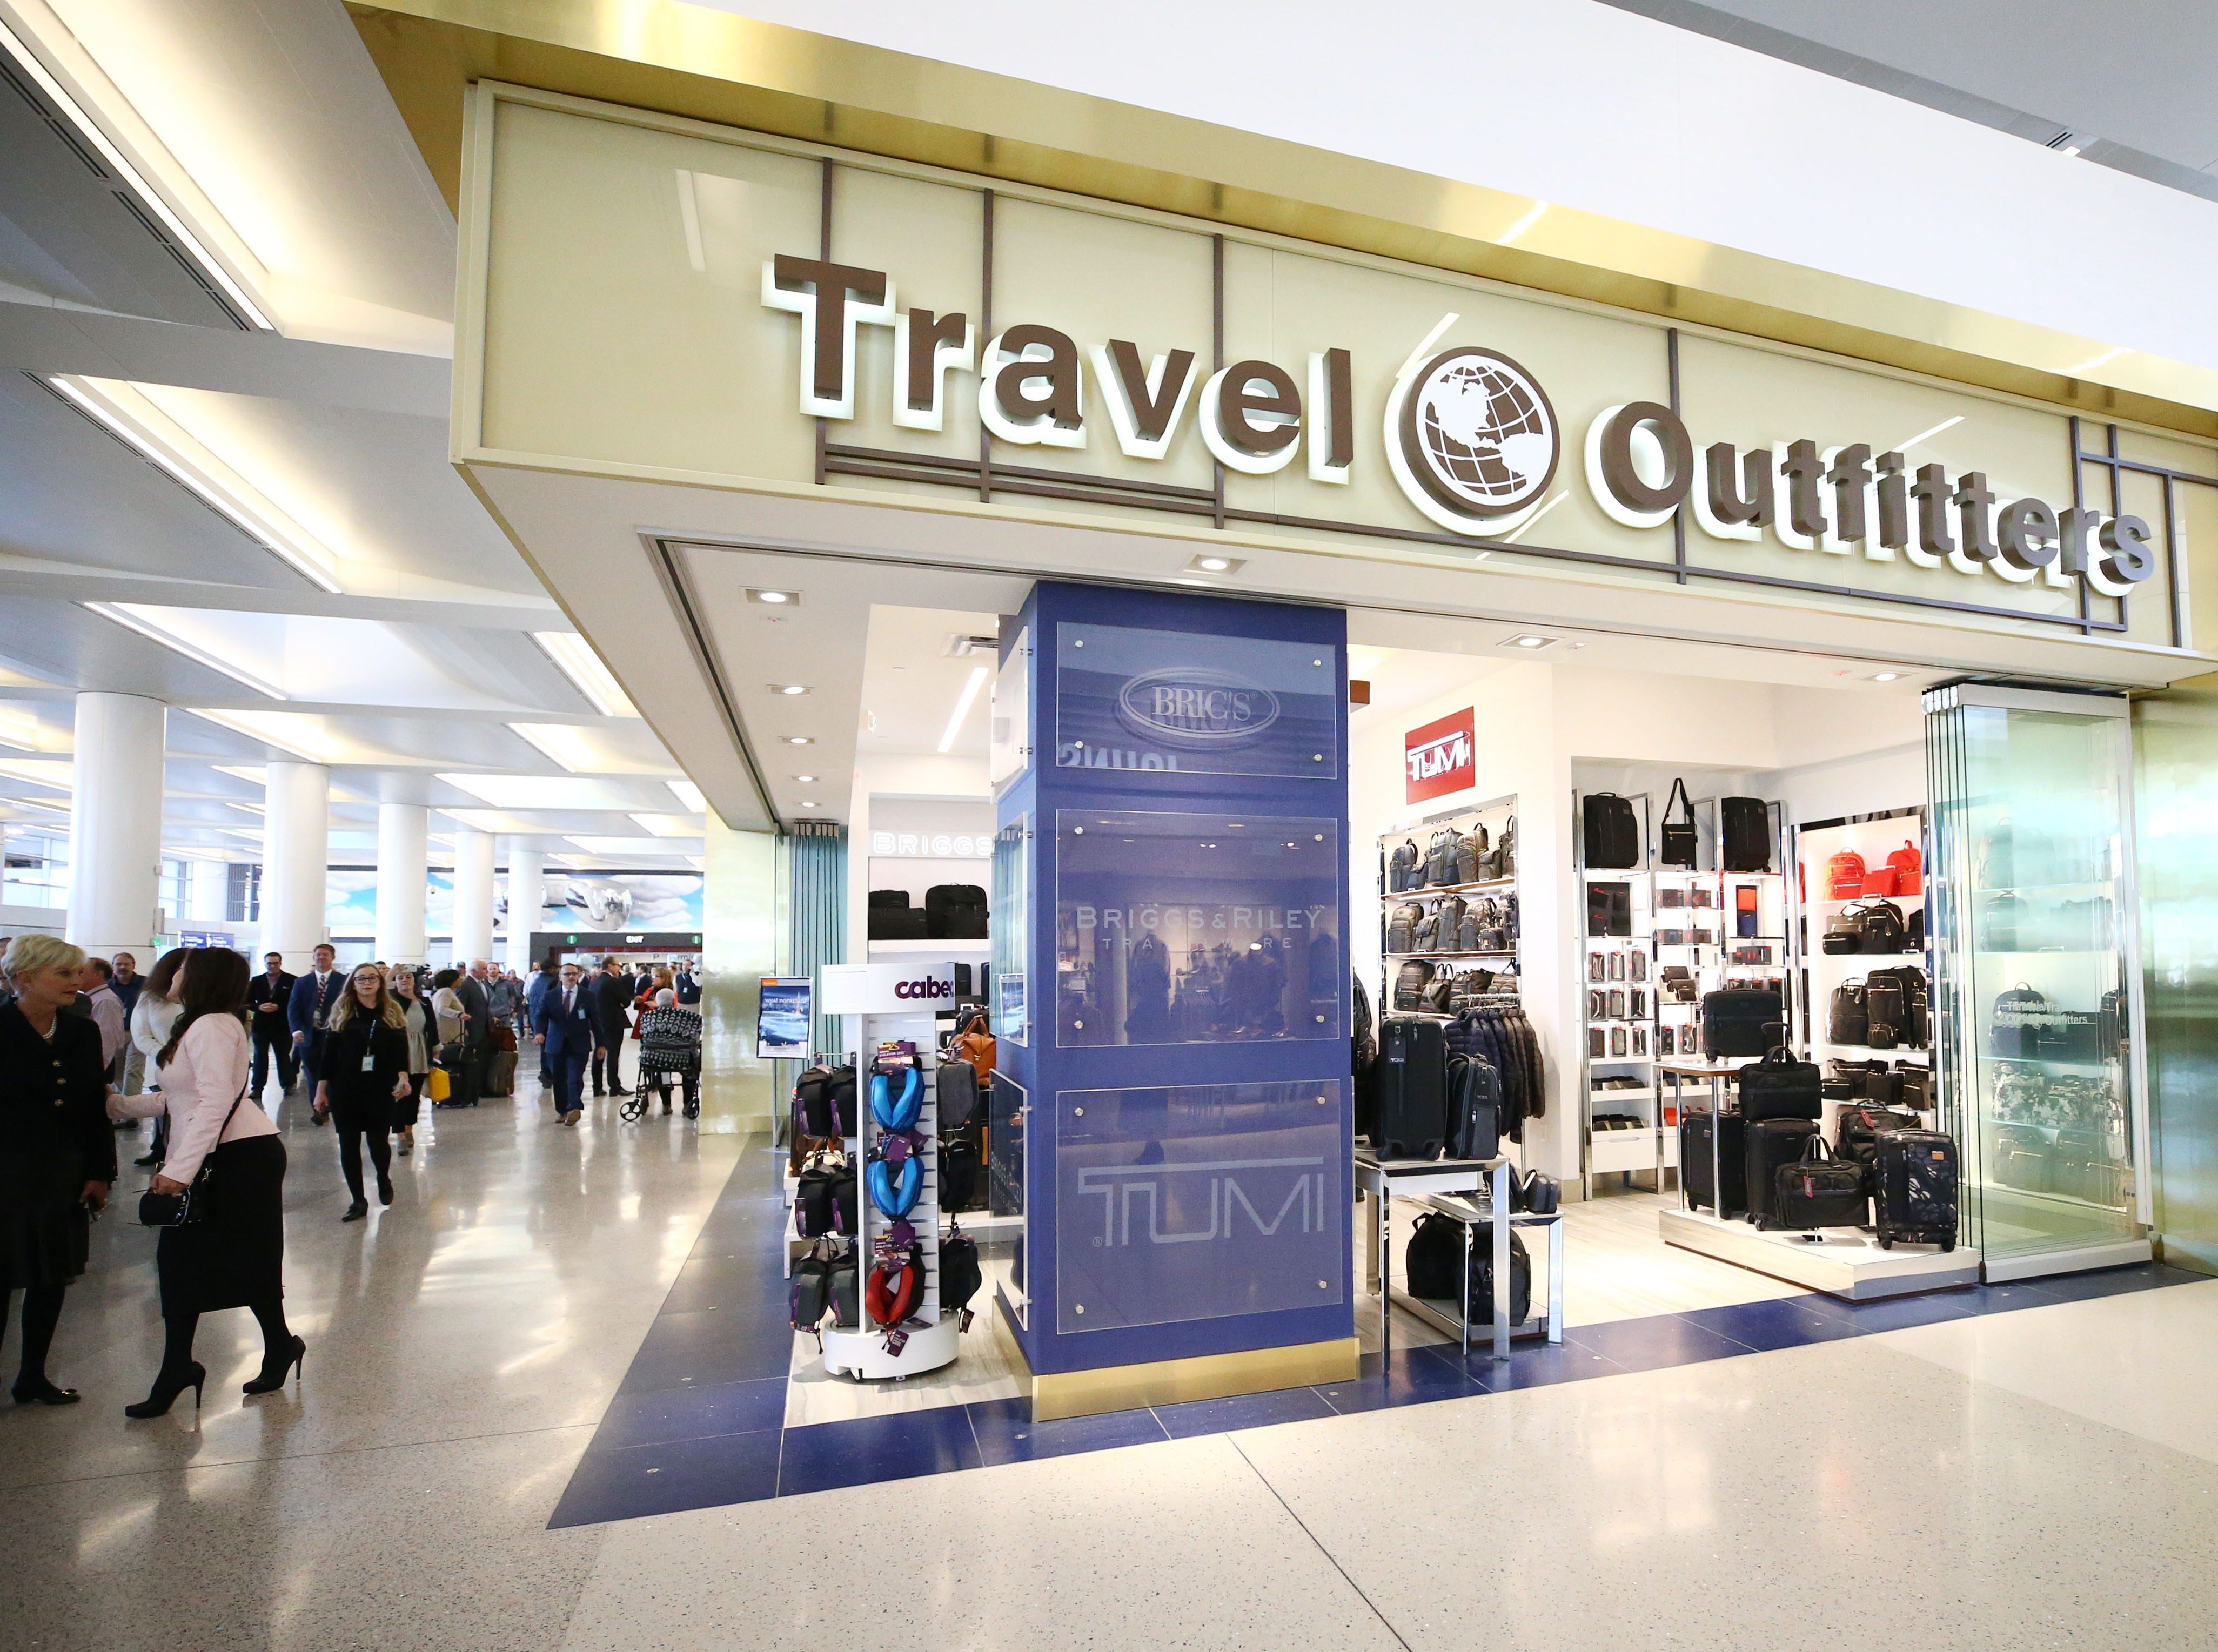 Shops at the new John S. McCain III Terminal 3, South Concourse during opening ceremonies on Monday, Jan. 7, 2019 at Phoenix Sky Harbor International Airport.